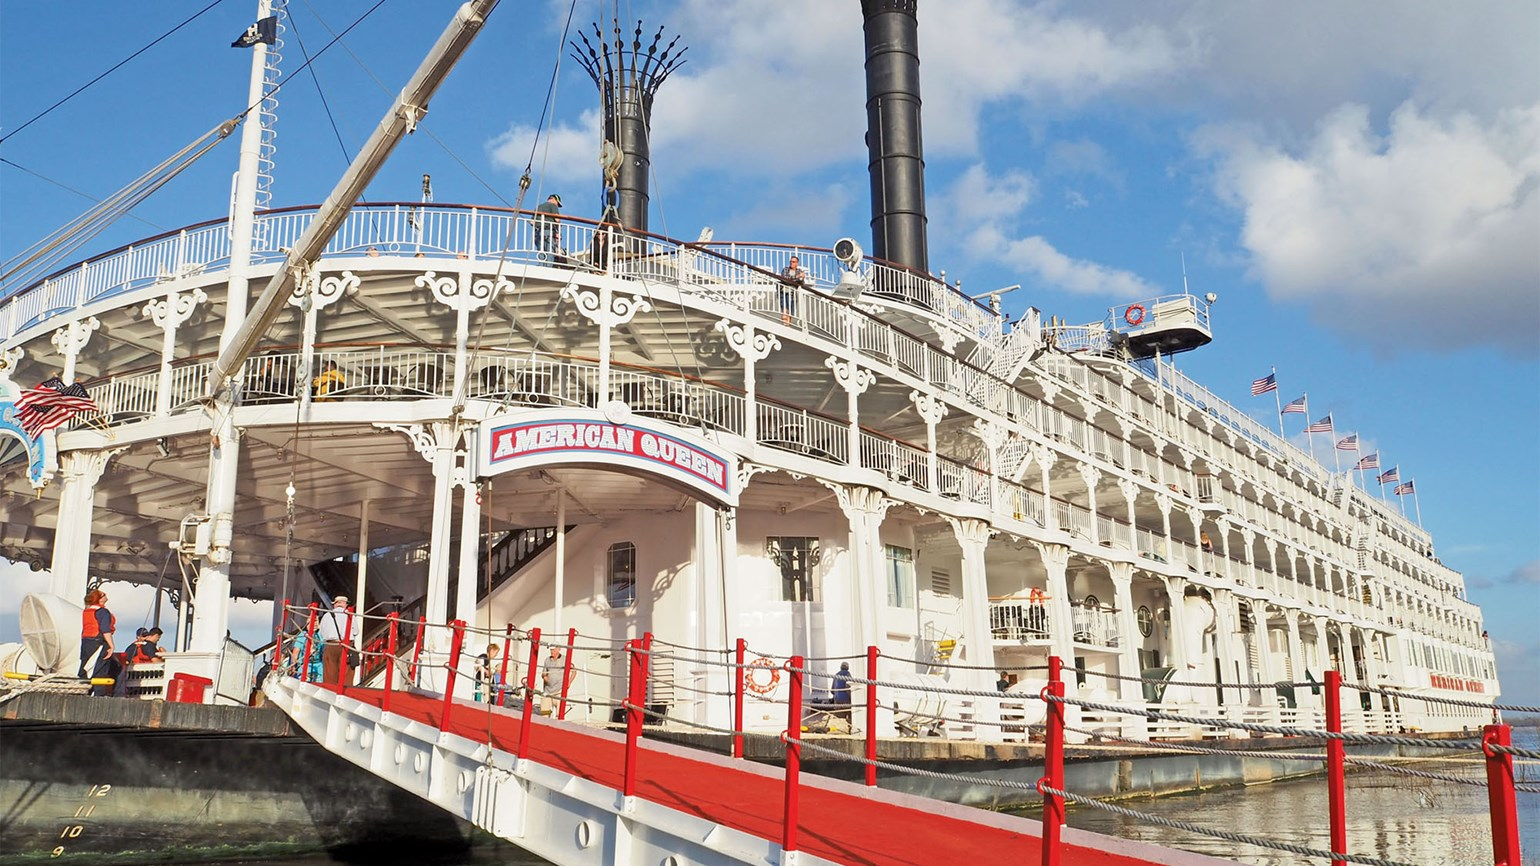 River cruise lines push back resumption of operations